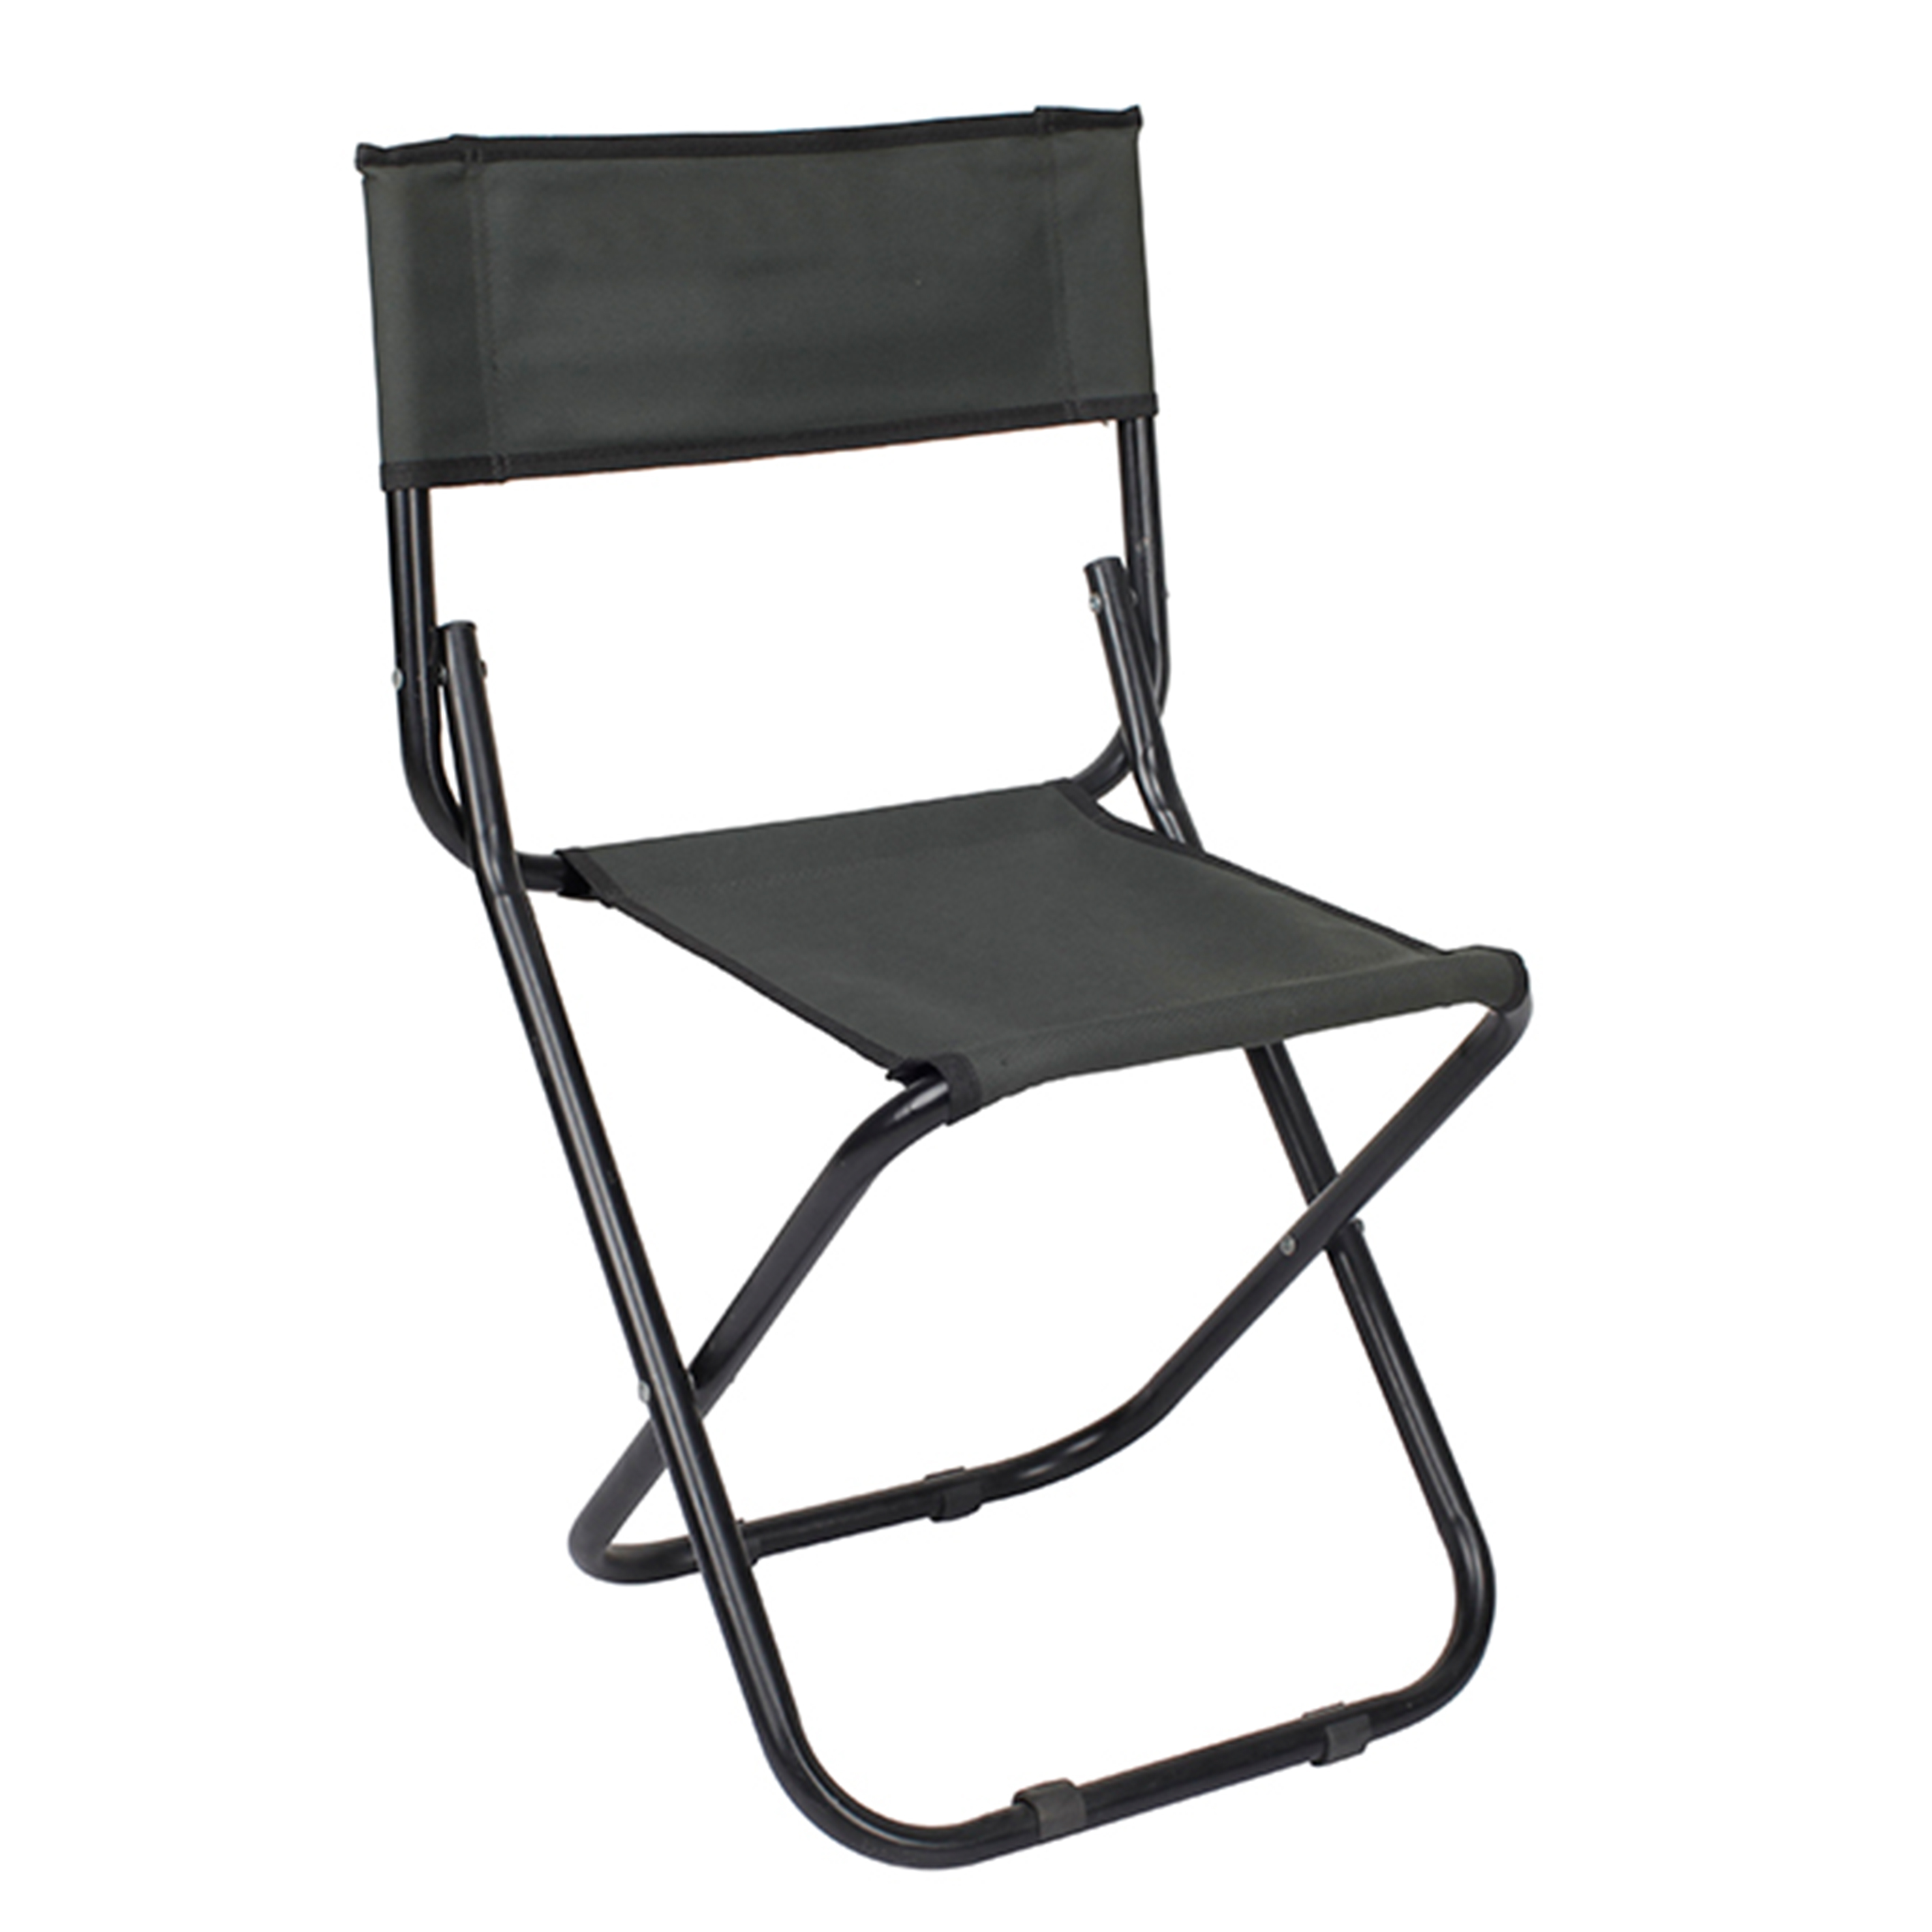 Outdoor Flexible Furniture Portable Fishing Chairs